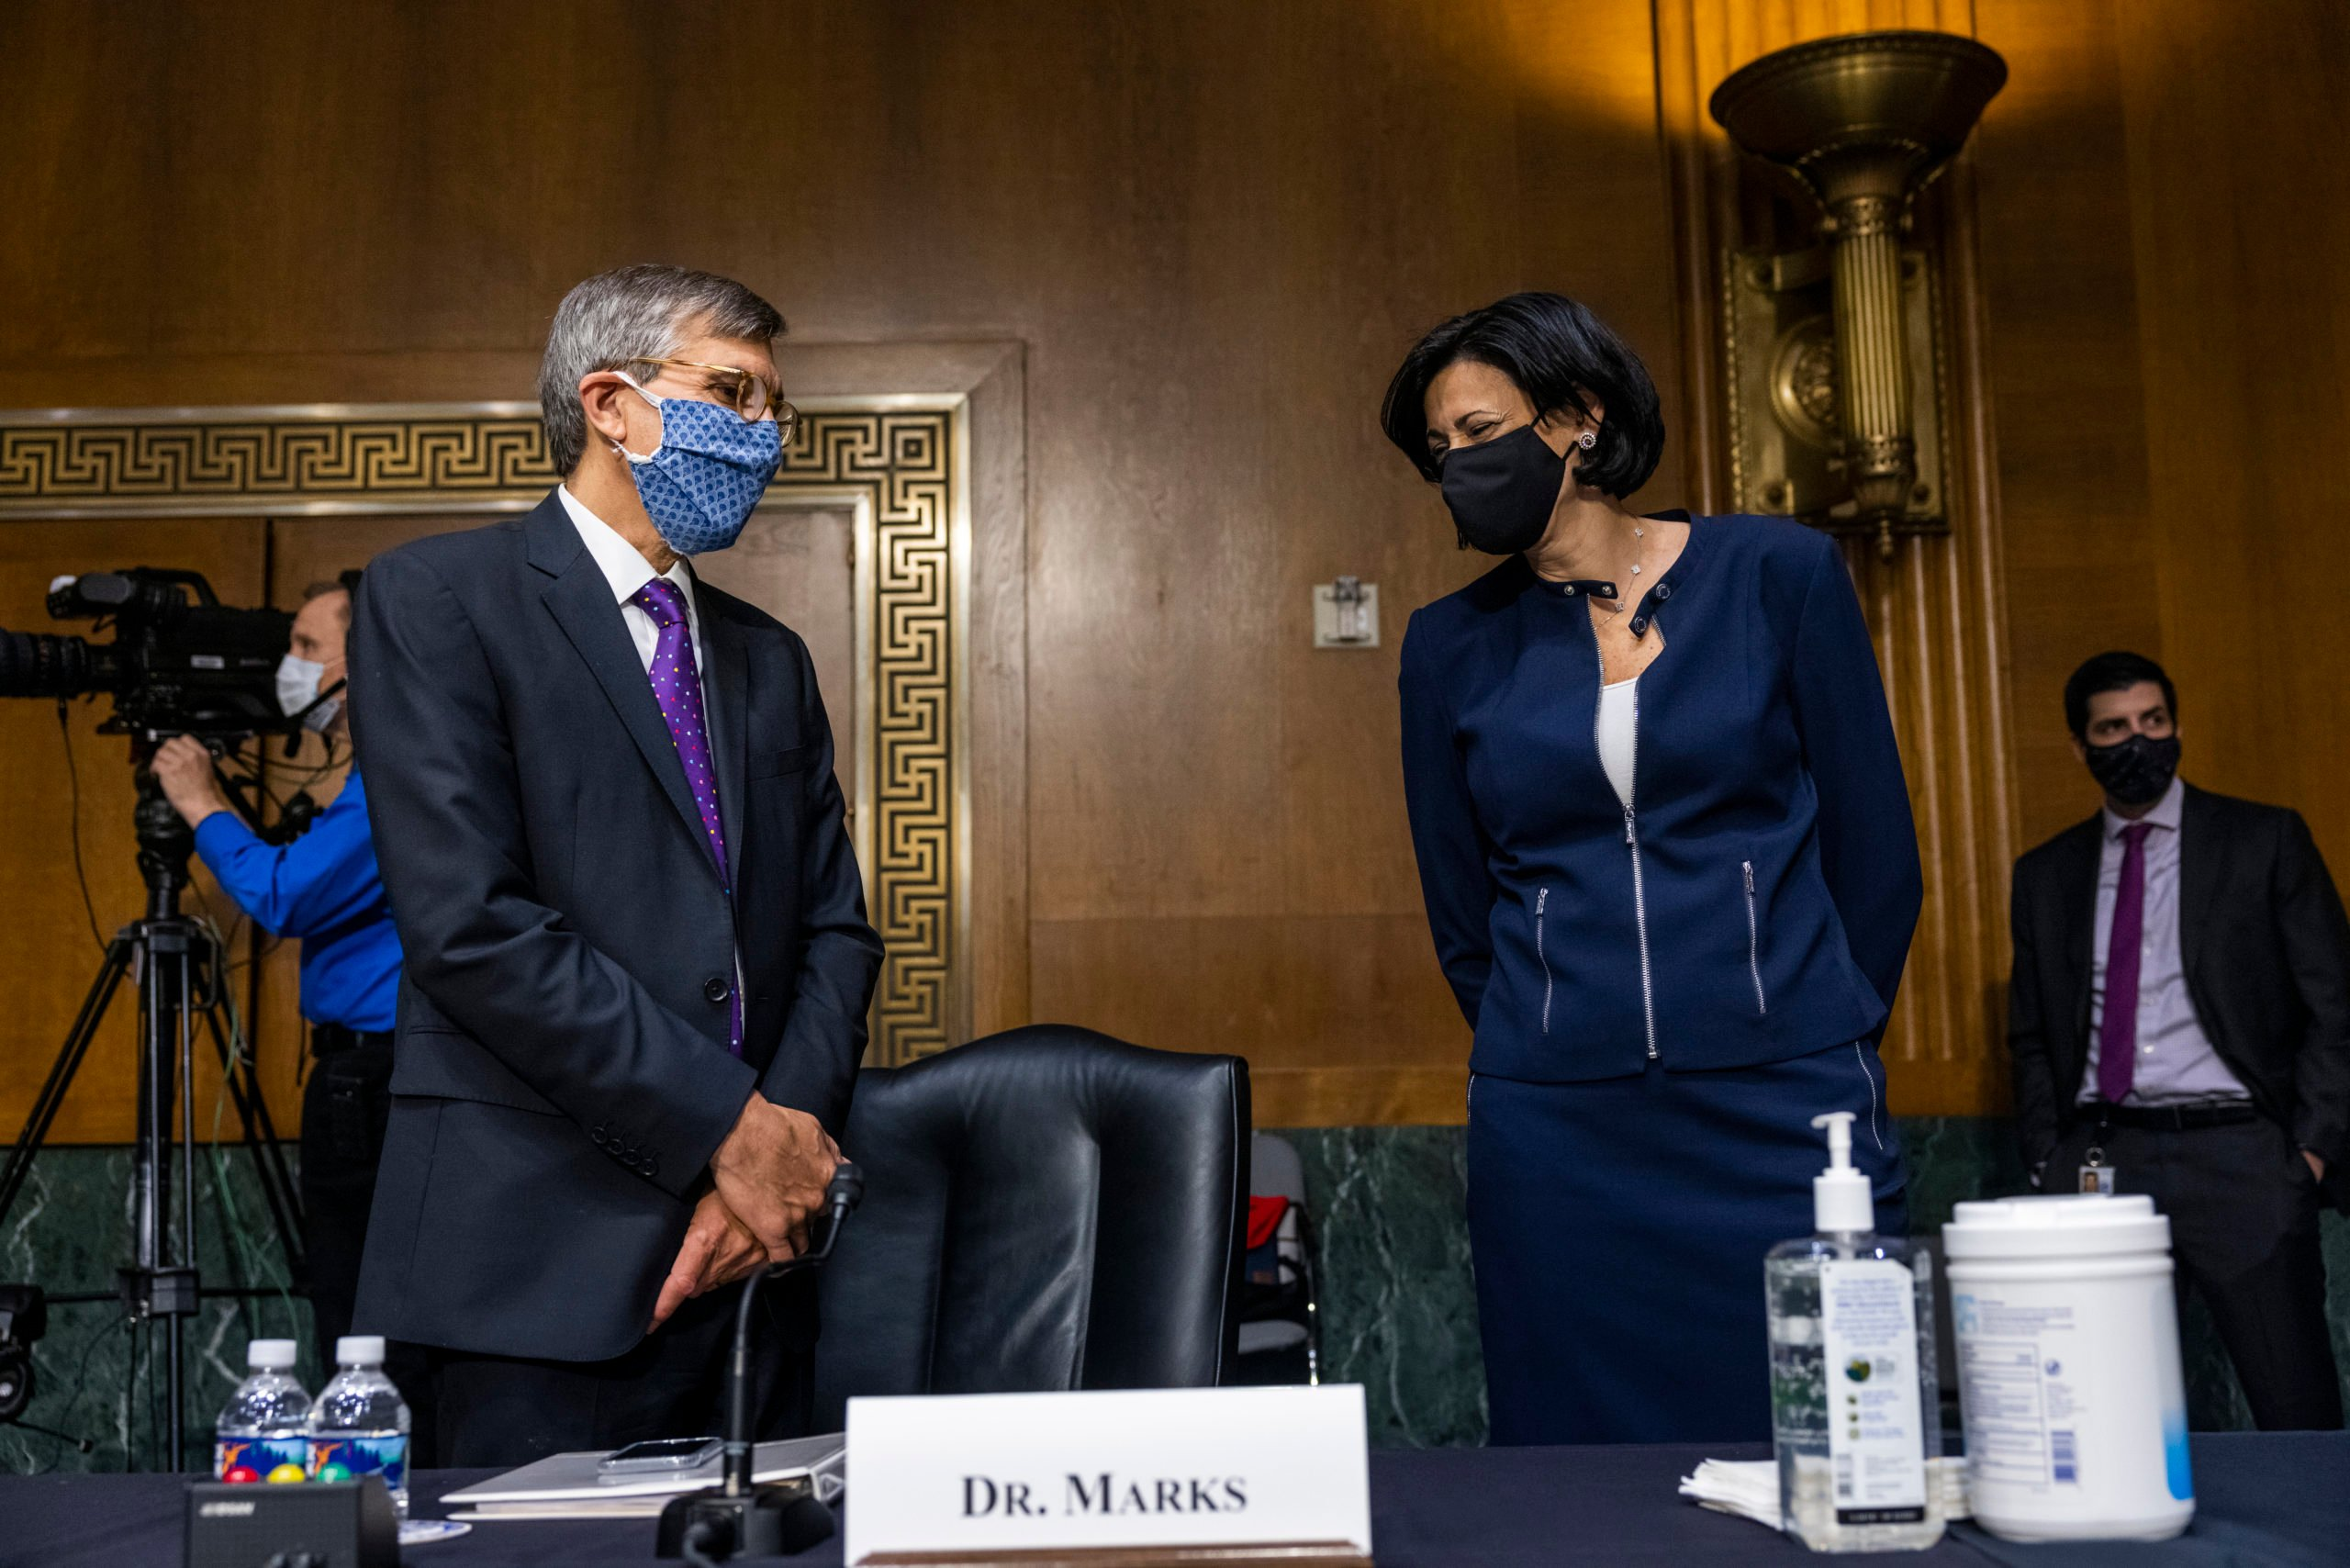 Peter Marks of the Food and Drug Administration meets with Rochelle Walensky, Director of the US Centers for Disease Control and Prevention. (Photo by Jim Lo Scalzo-Pool/Getty Images)